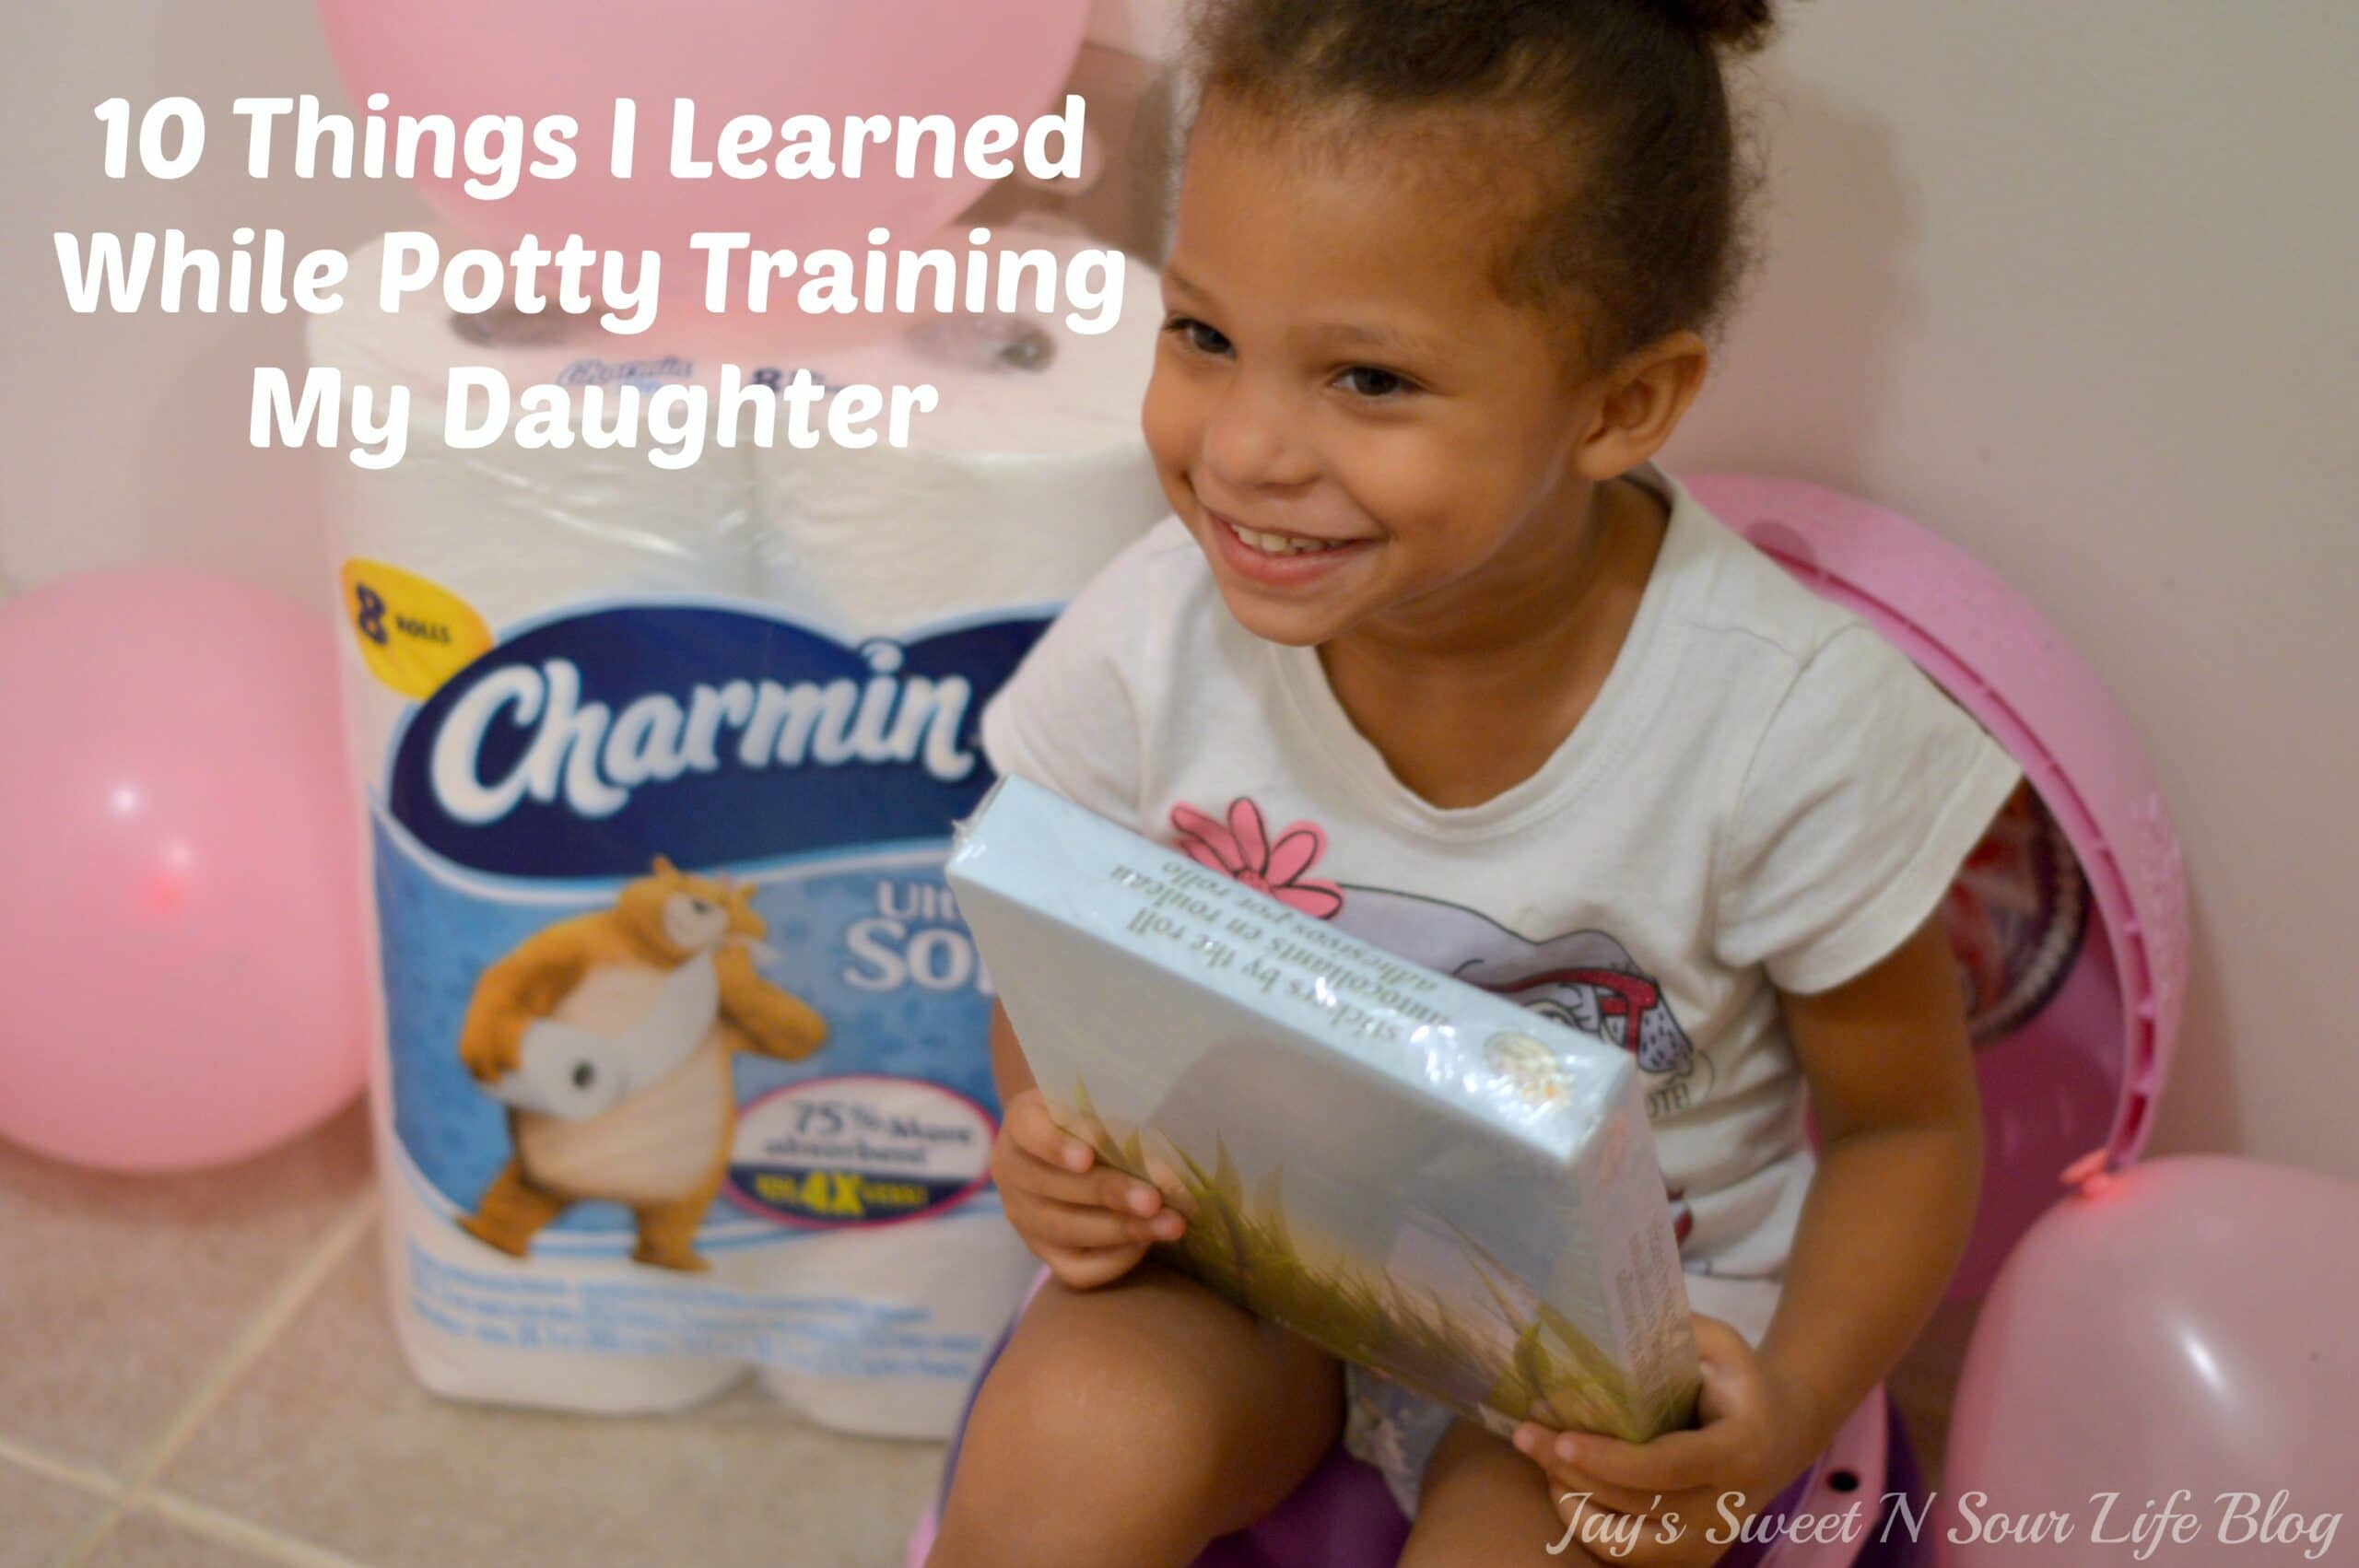 10 Things I Learned While Potty Training My Daughter